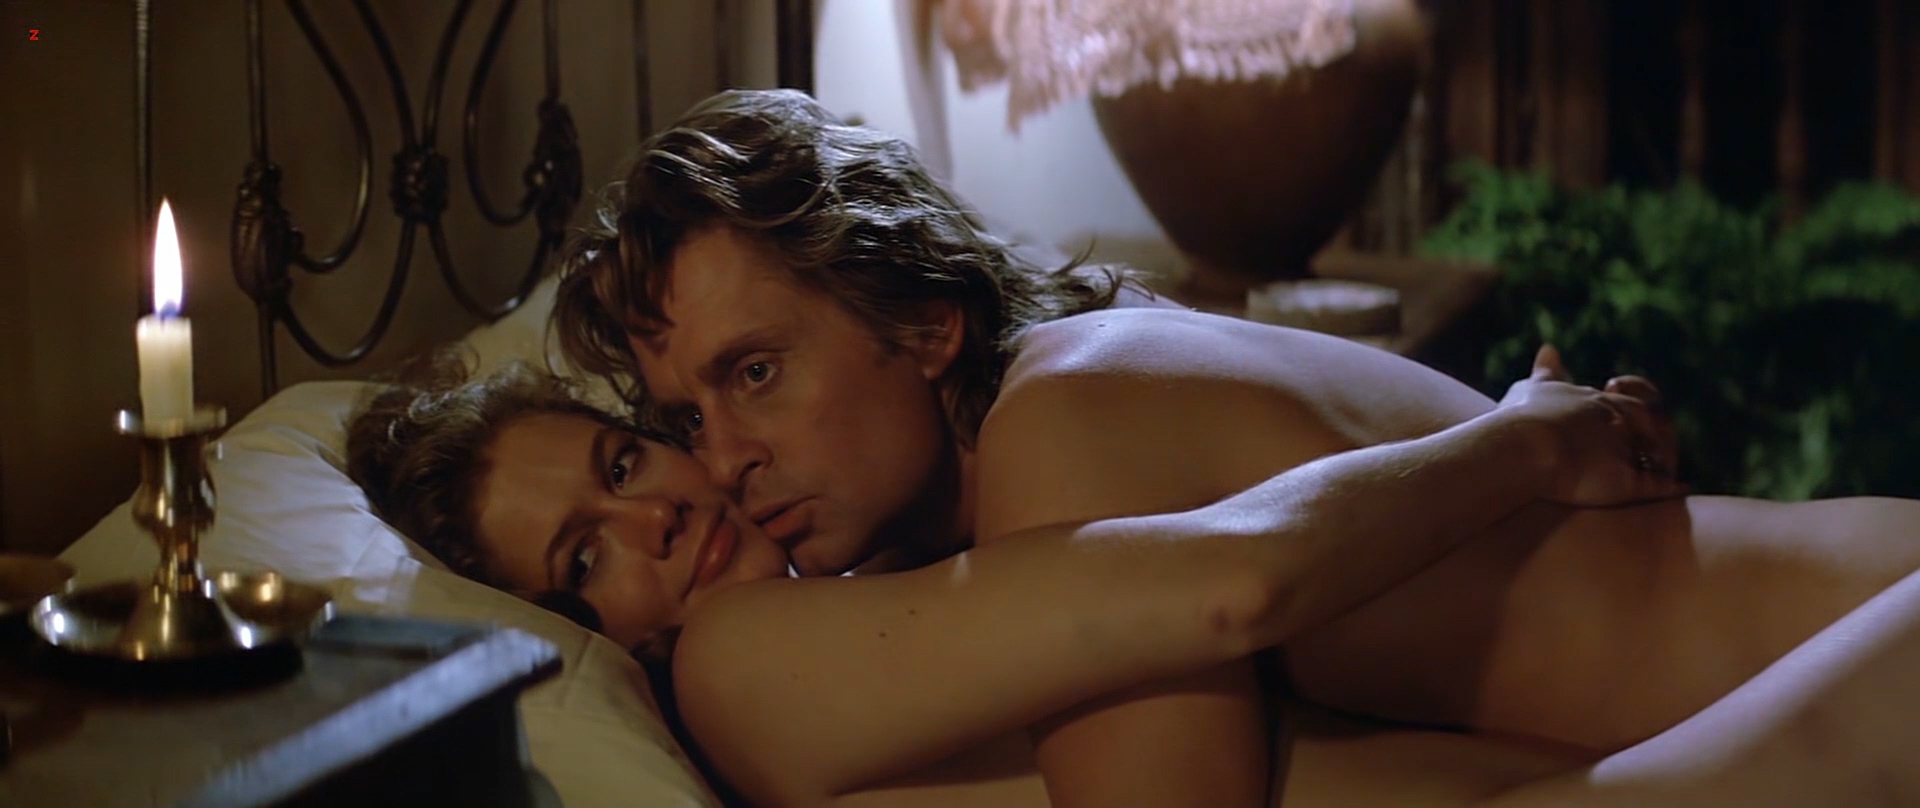 Kathleen Turner nude but covered side boob Kymberly Herrin hot see through - Romancing the Stone (1984) hd1080p BluRay (12)